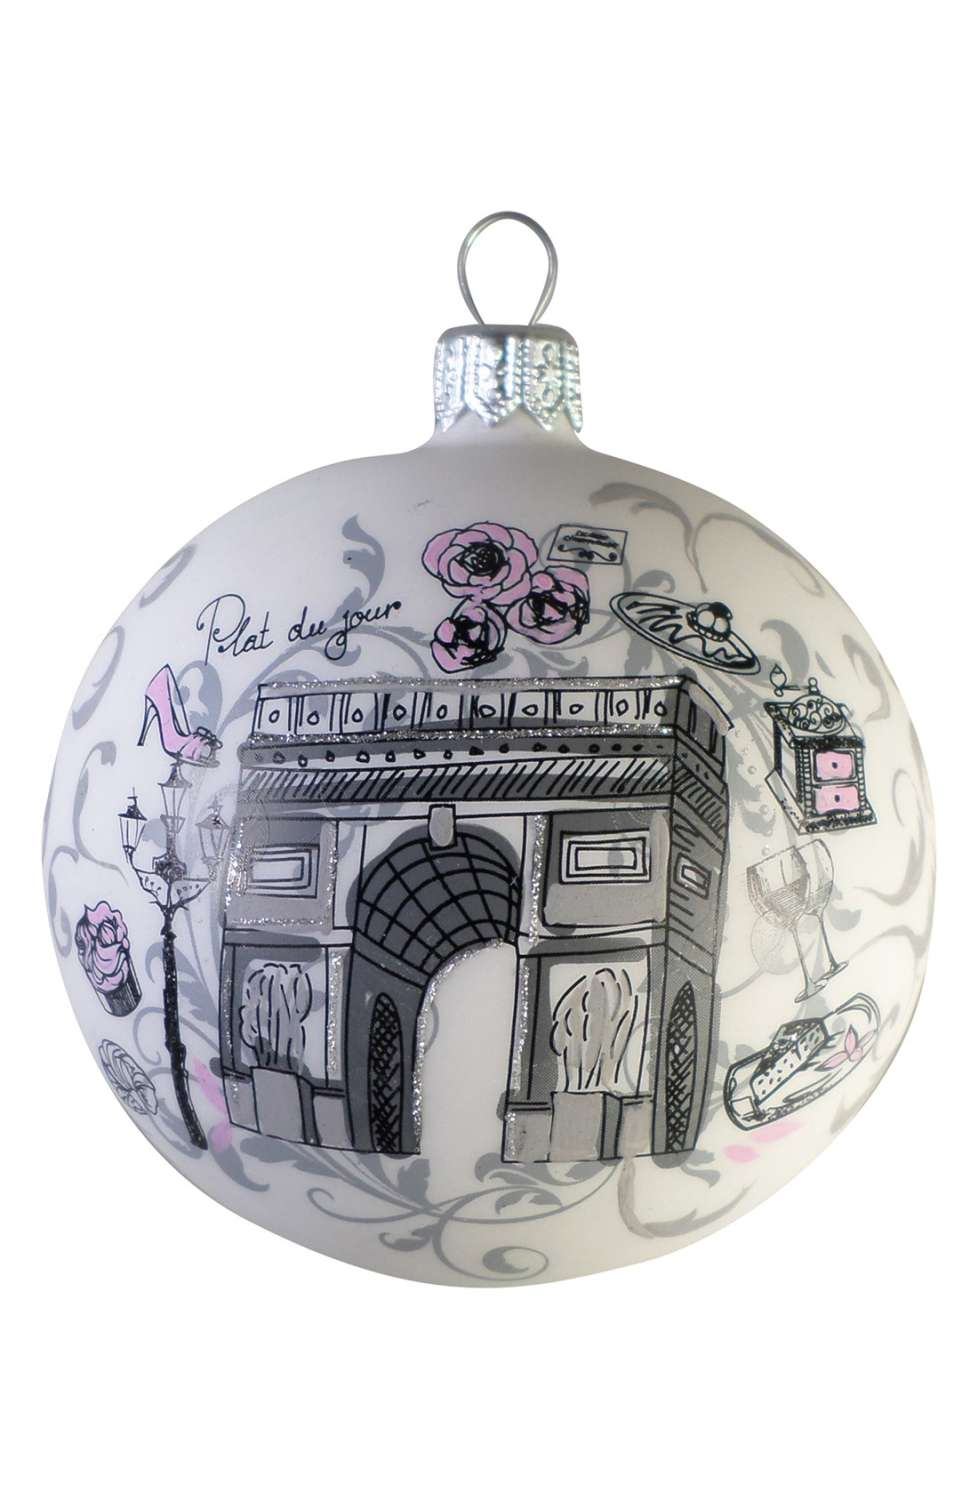 arc de triumph nordstrom ornament - Nordstrom Christmas Decorations